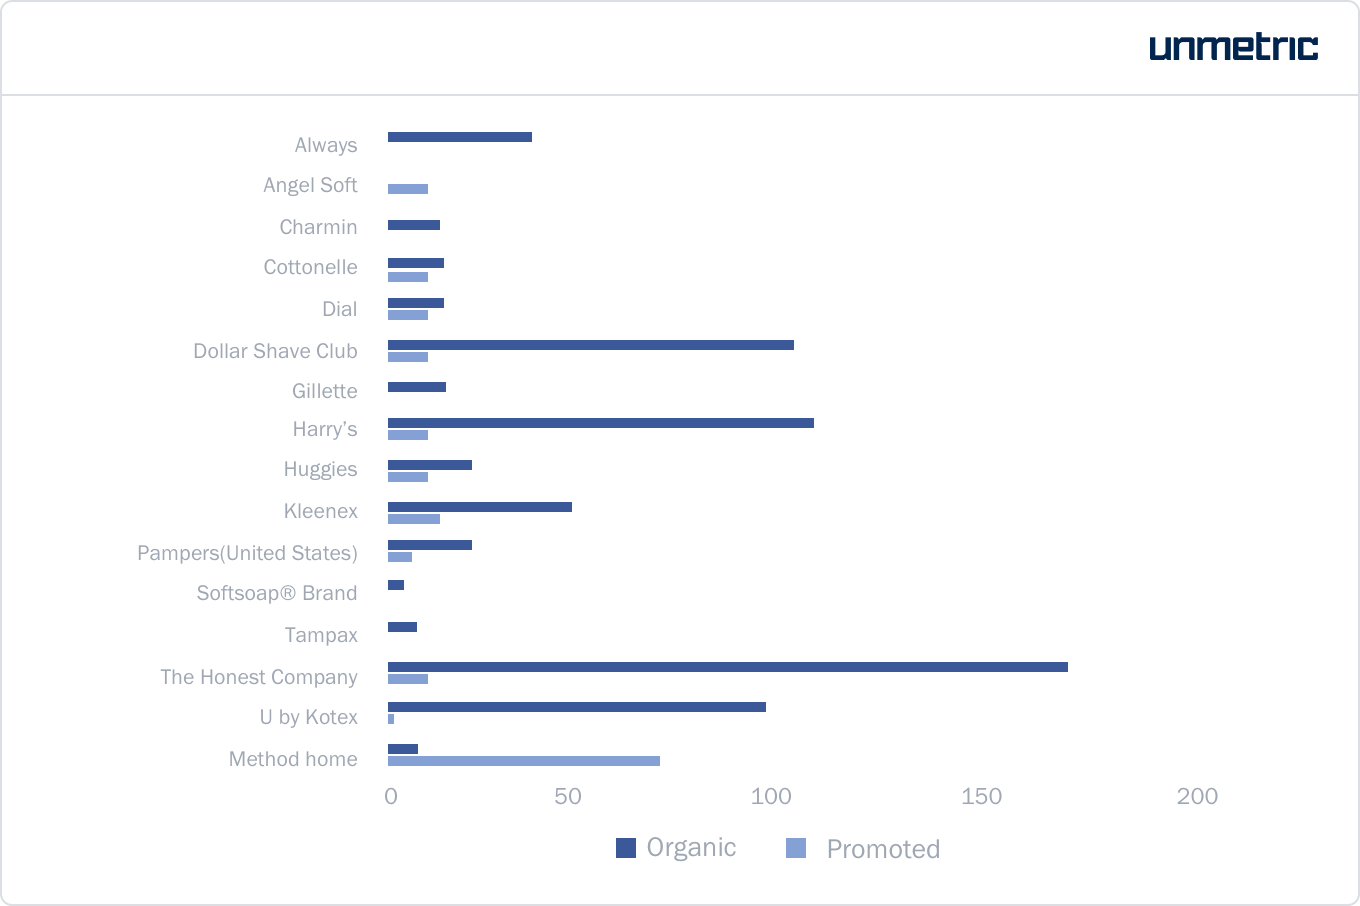 Number of organic and promoted posts by each CPG brand